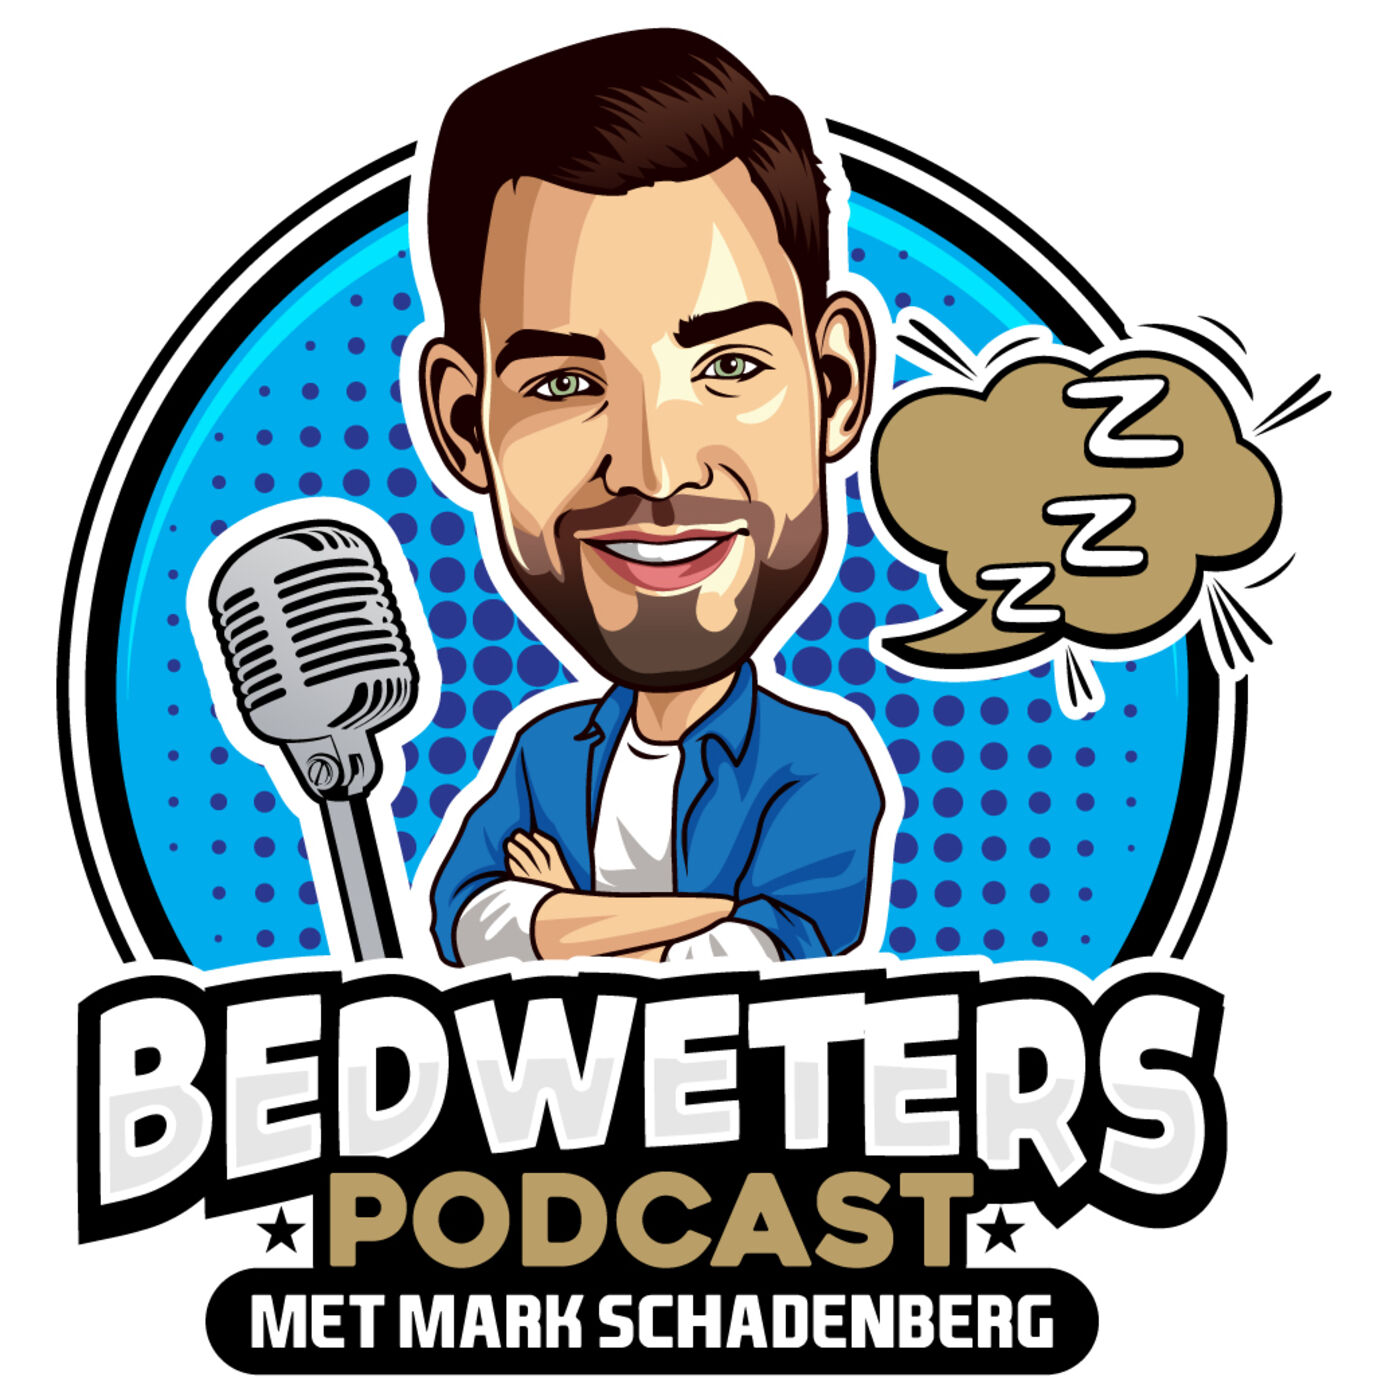 Bedweters Podcast logo